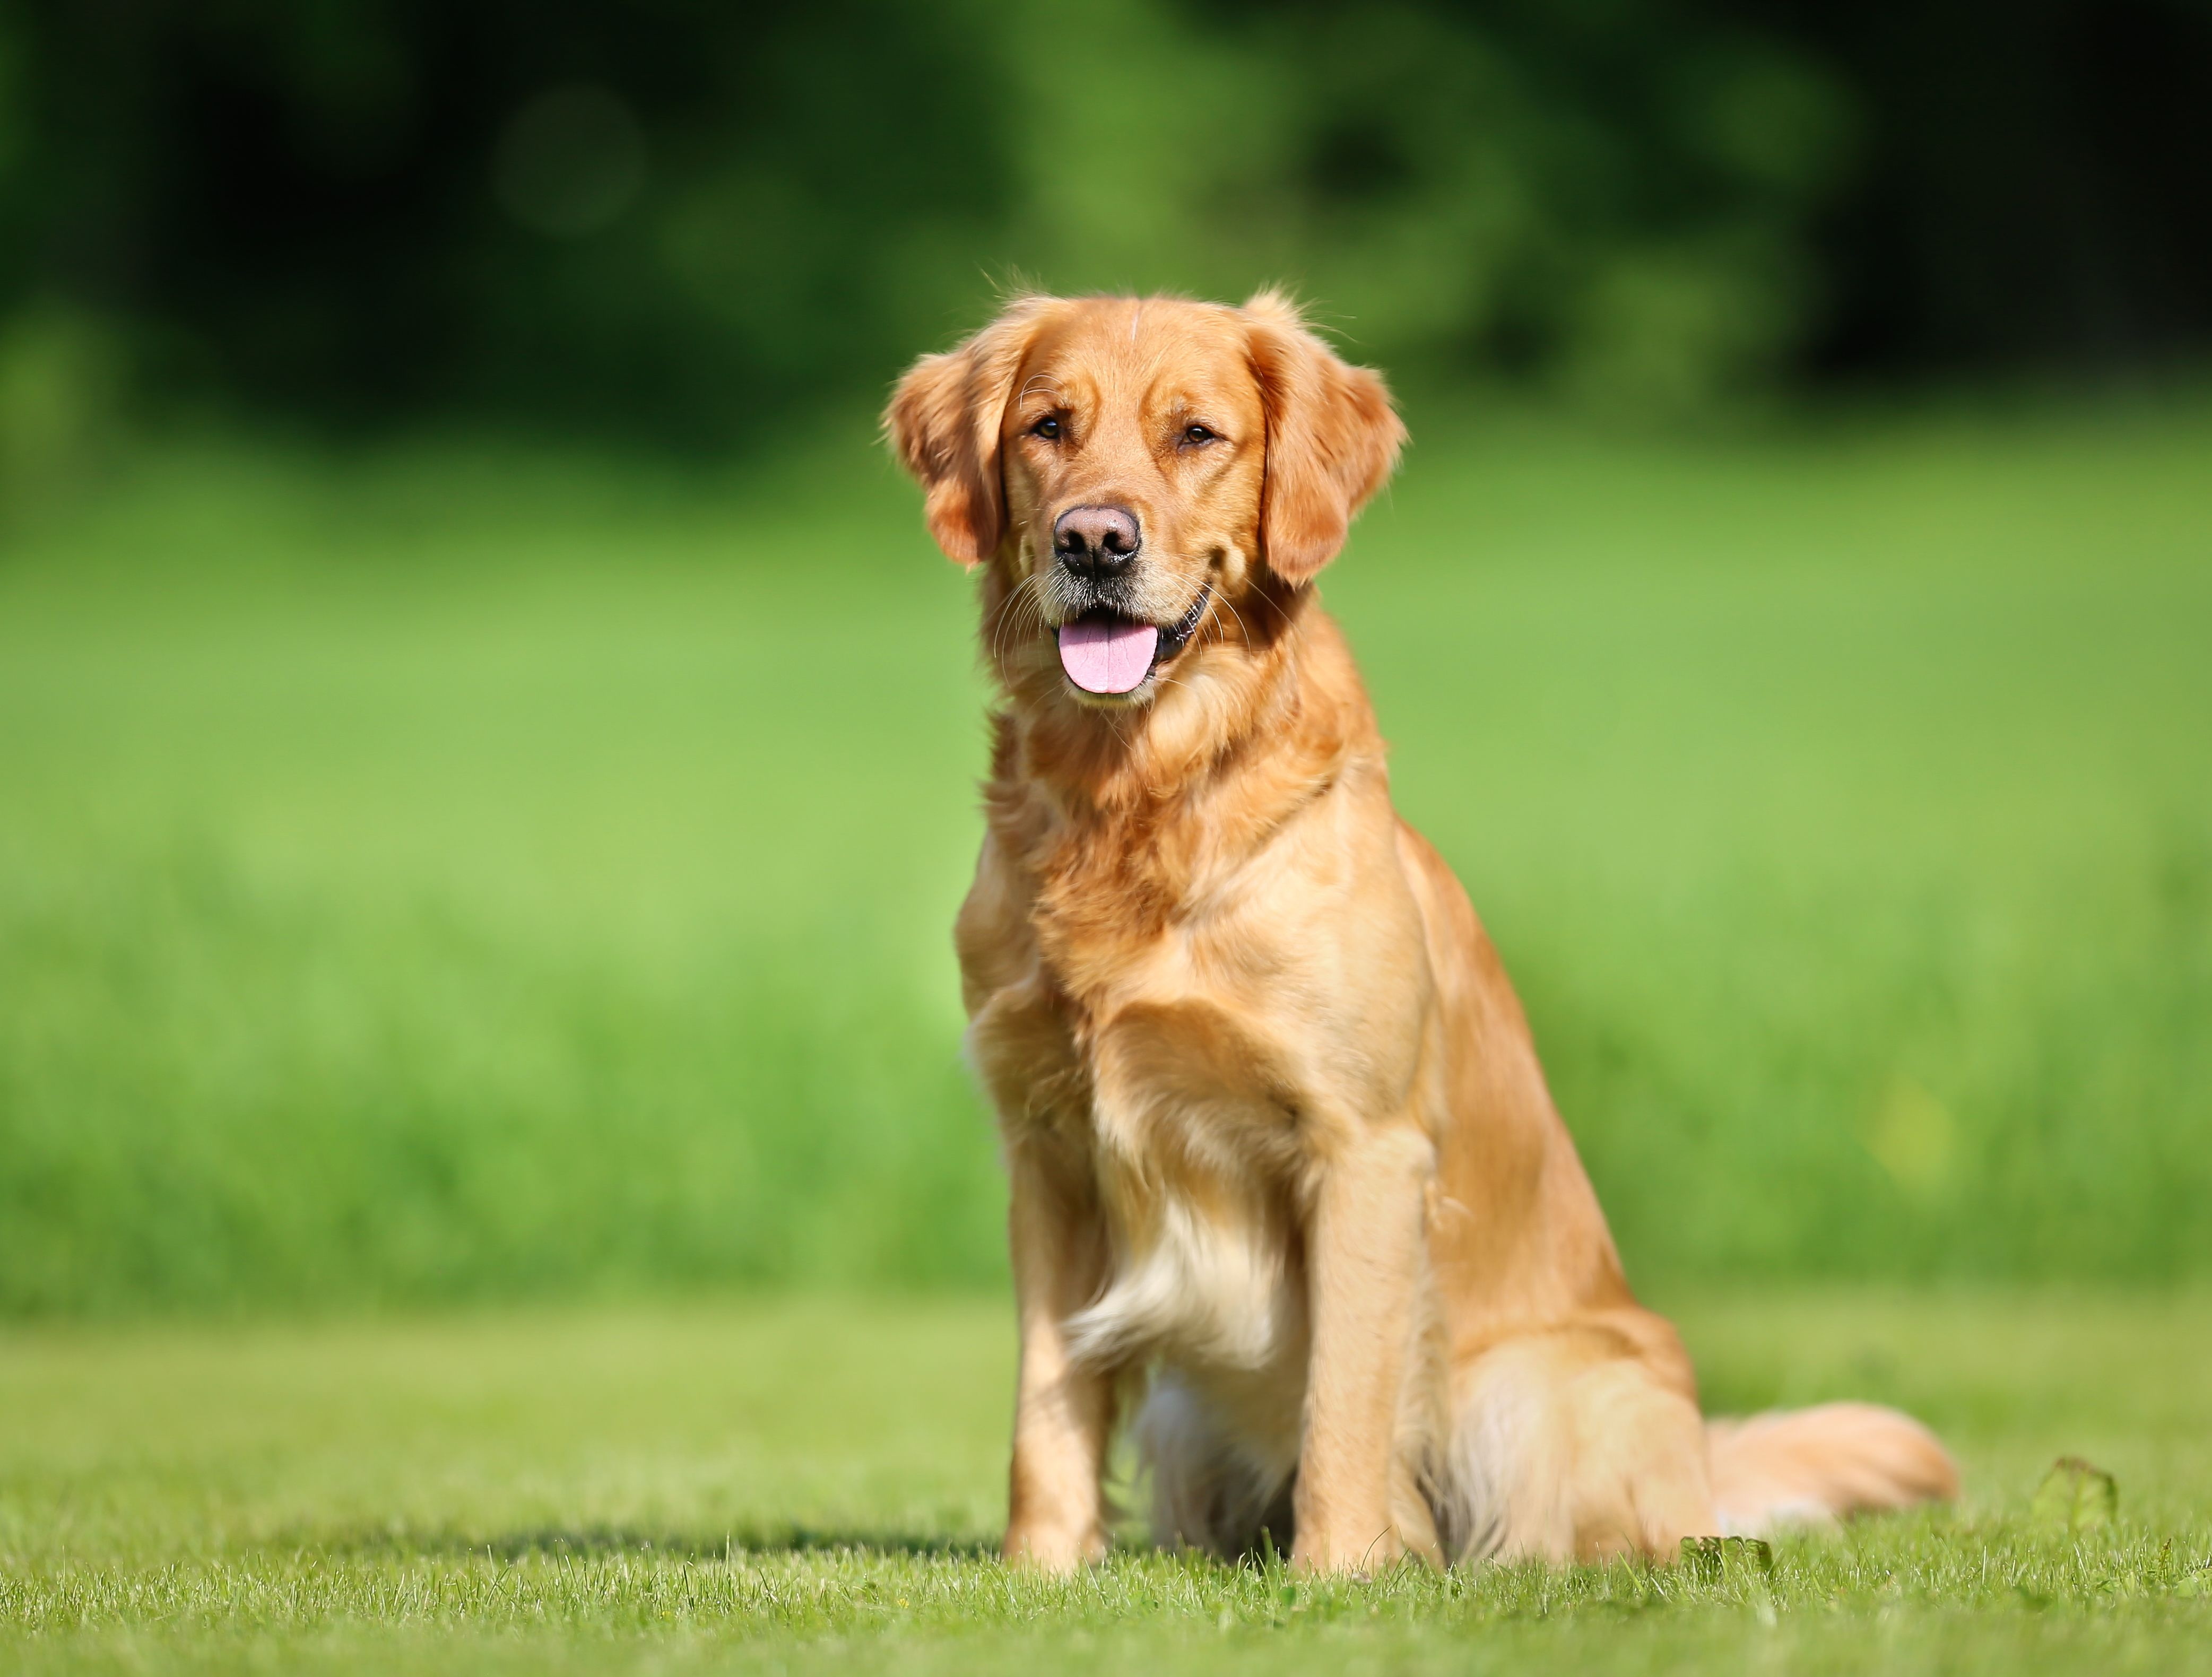 40 Best Large Dog Breeds - Top Big Dogs List and Pictures